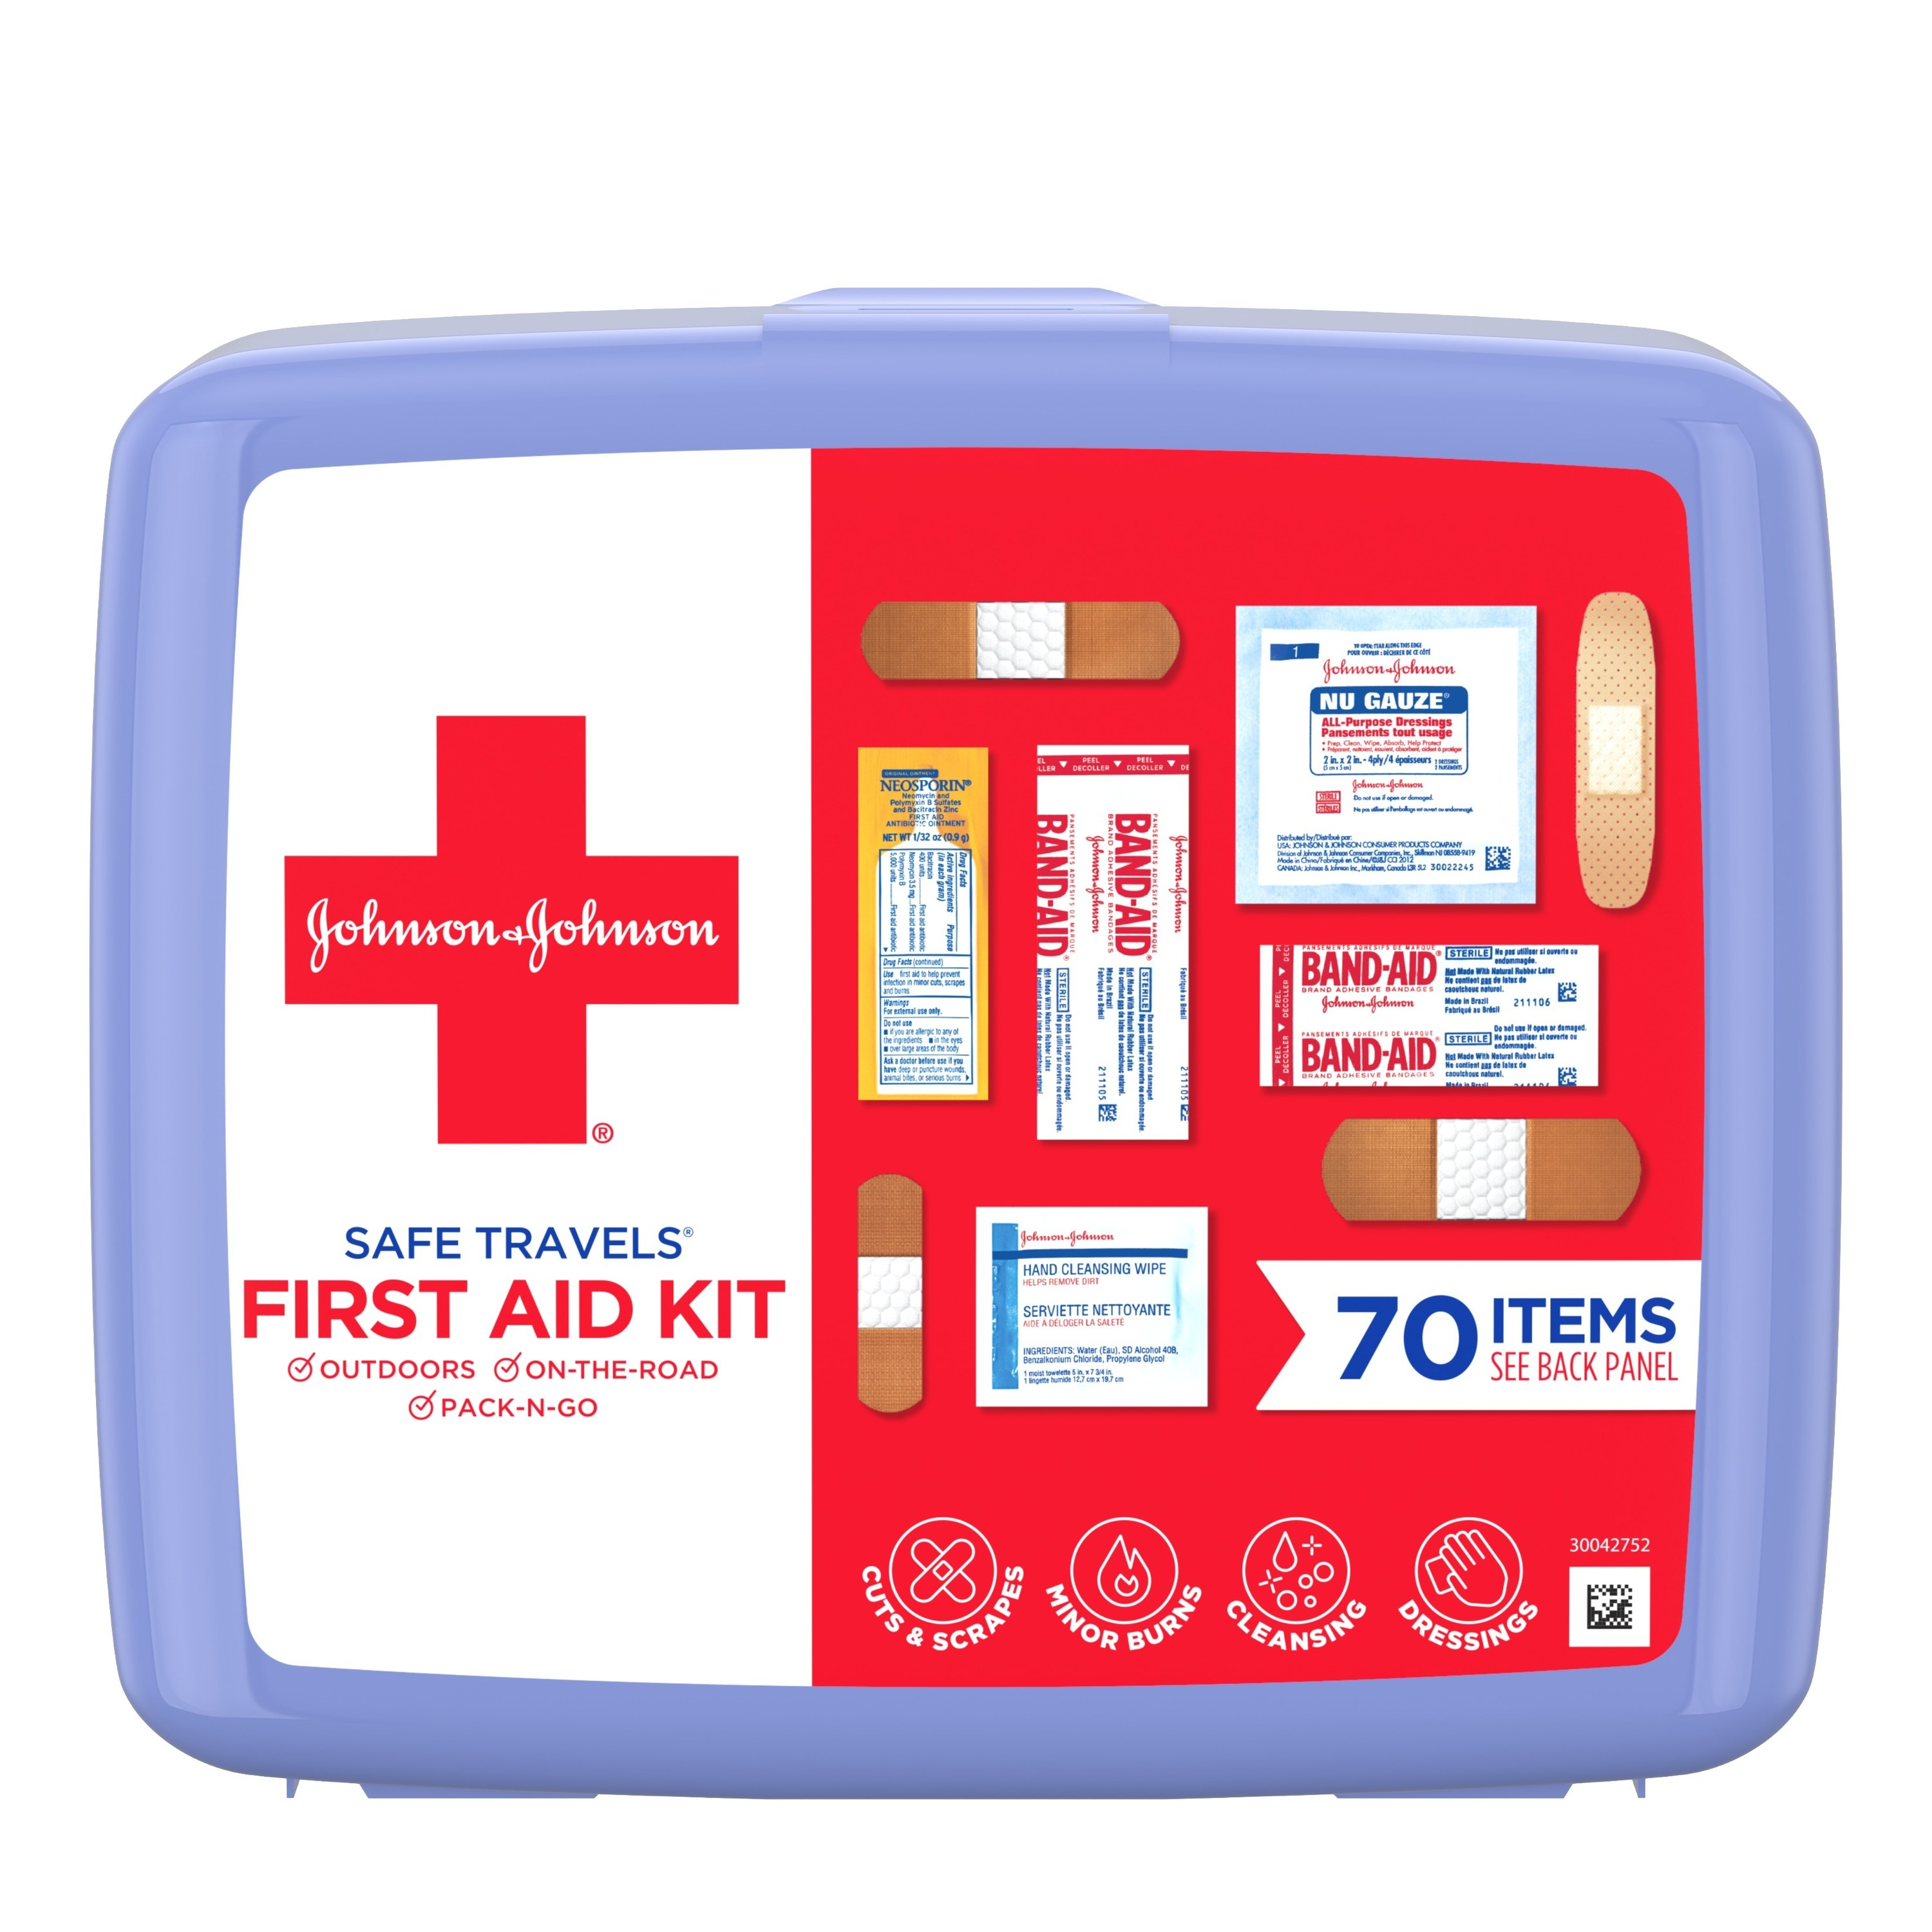 The Johnson & Johnson Safe Travels Portable Emergency First Aid Kit